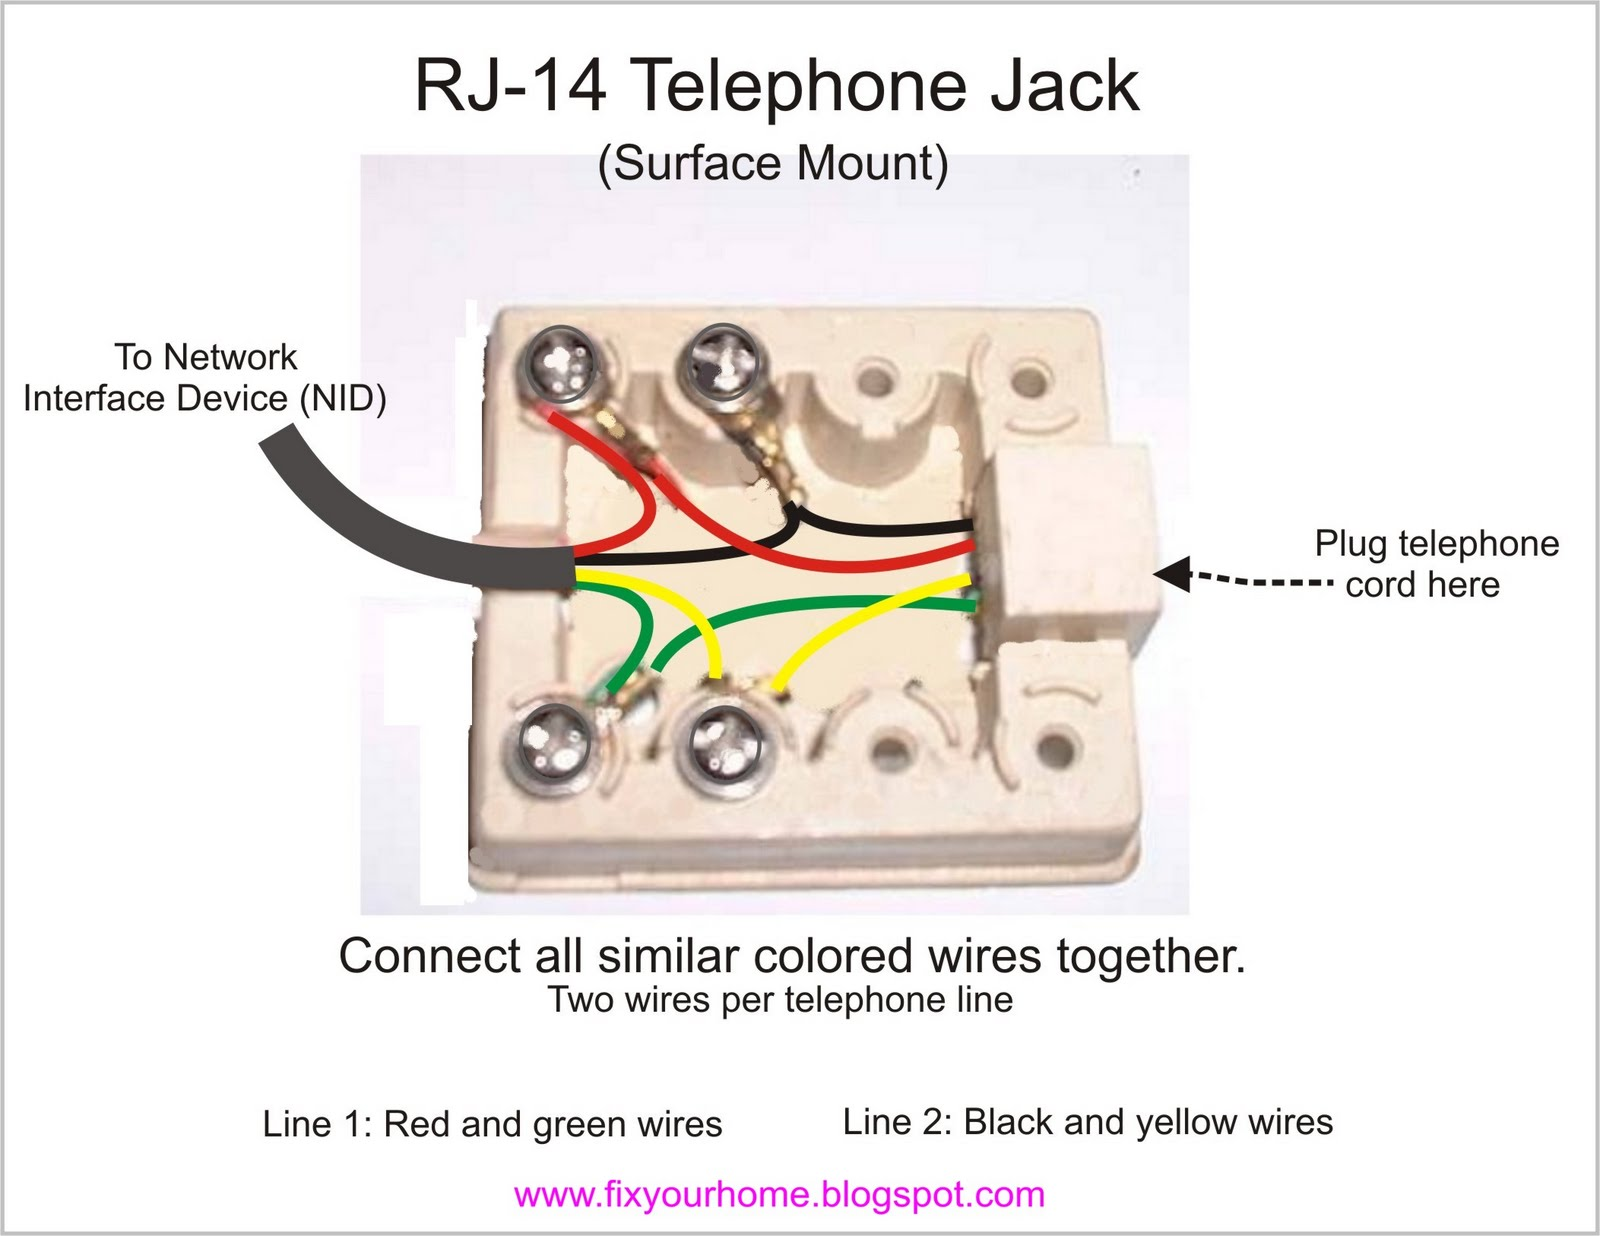 Cat6 Crossover Cable Wiring Diagram also Adsl Dslam Diagram besides Cat 5 Wiring Color Code Diagram likewise Telephone RJ11 Wiring Reference besides Cat5e Wiring Diagram For Phone Jack. on cat5 to phone jack wiring